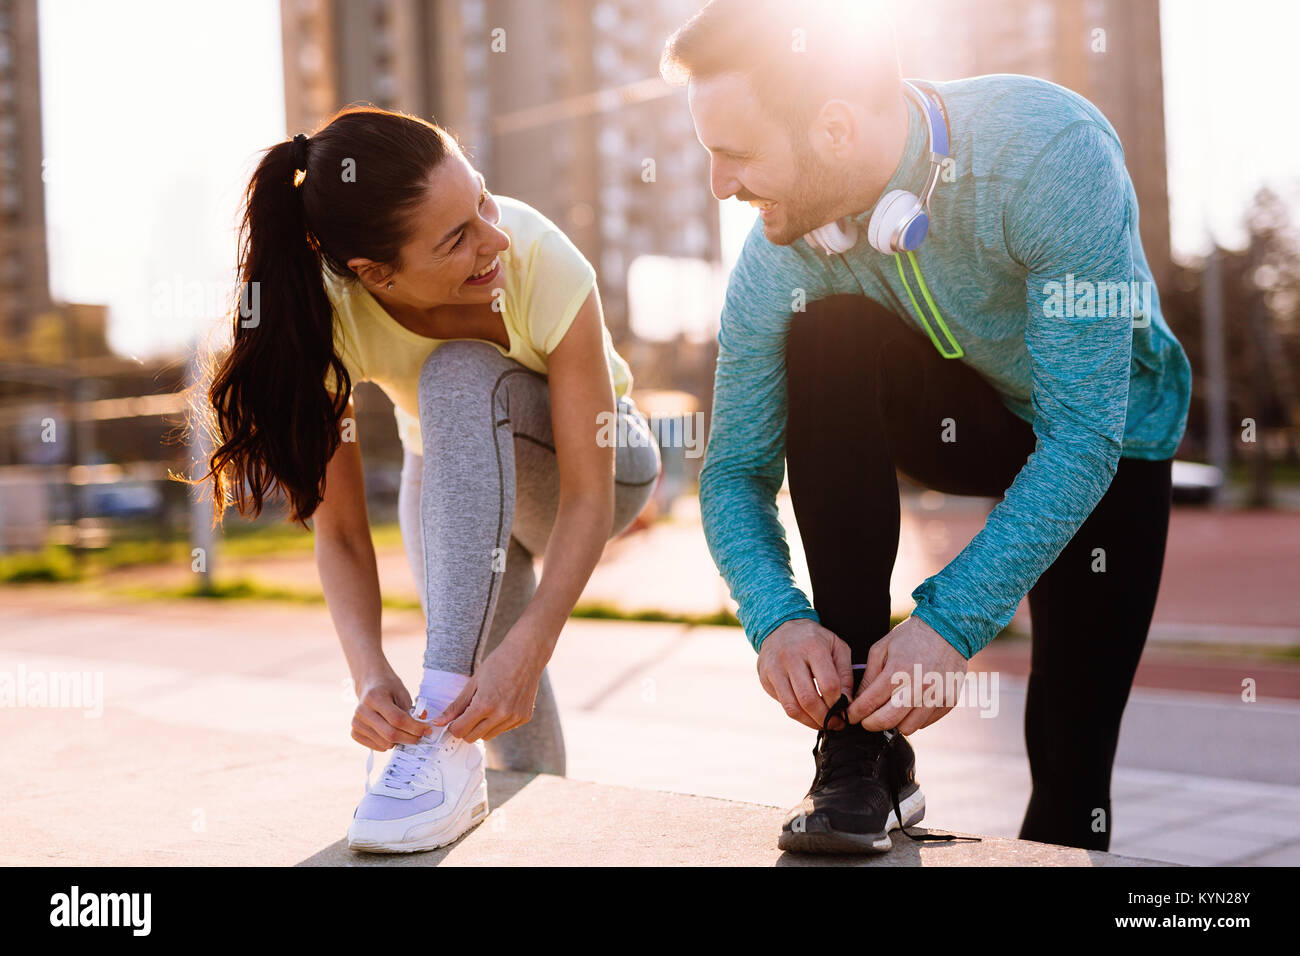 Runners tying running shoes and getting ready to run - Stock Image